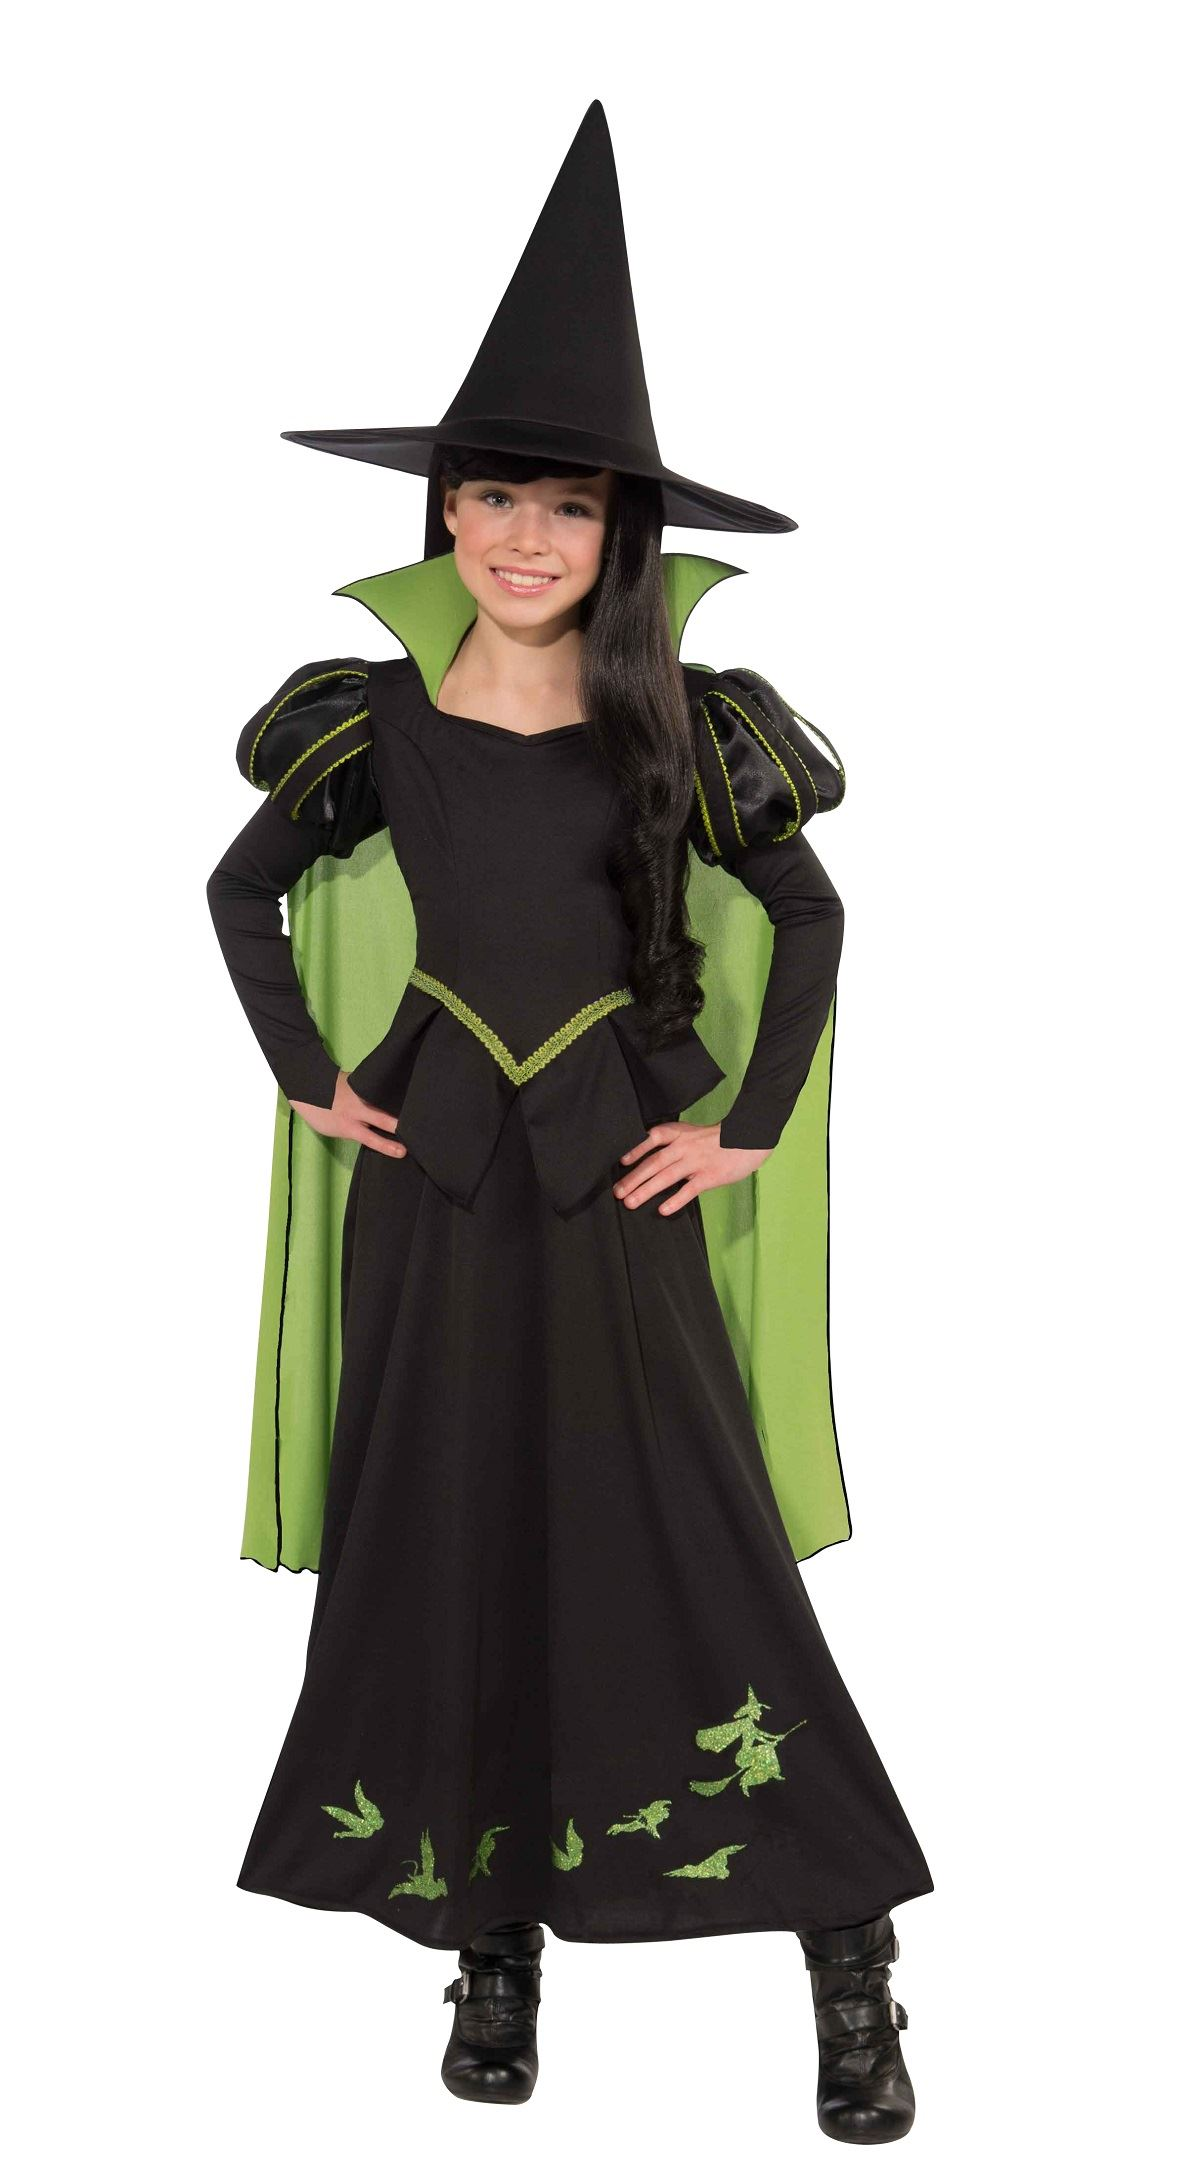 Kids Wicked Witch Of The West Girls Costume | $33.99 | The Costume ...